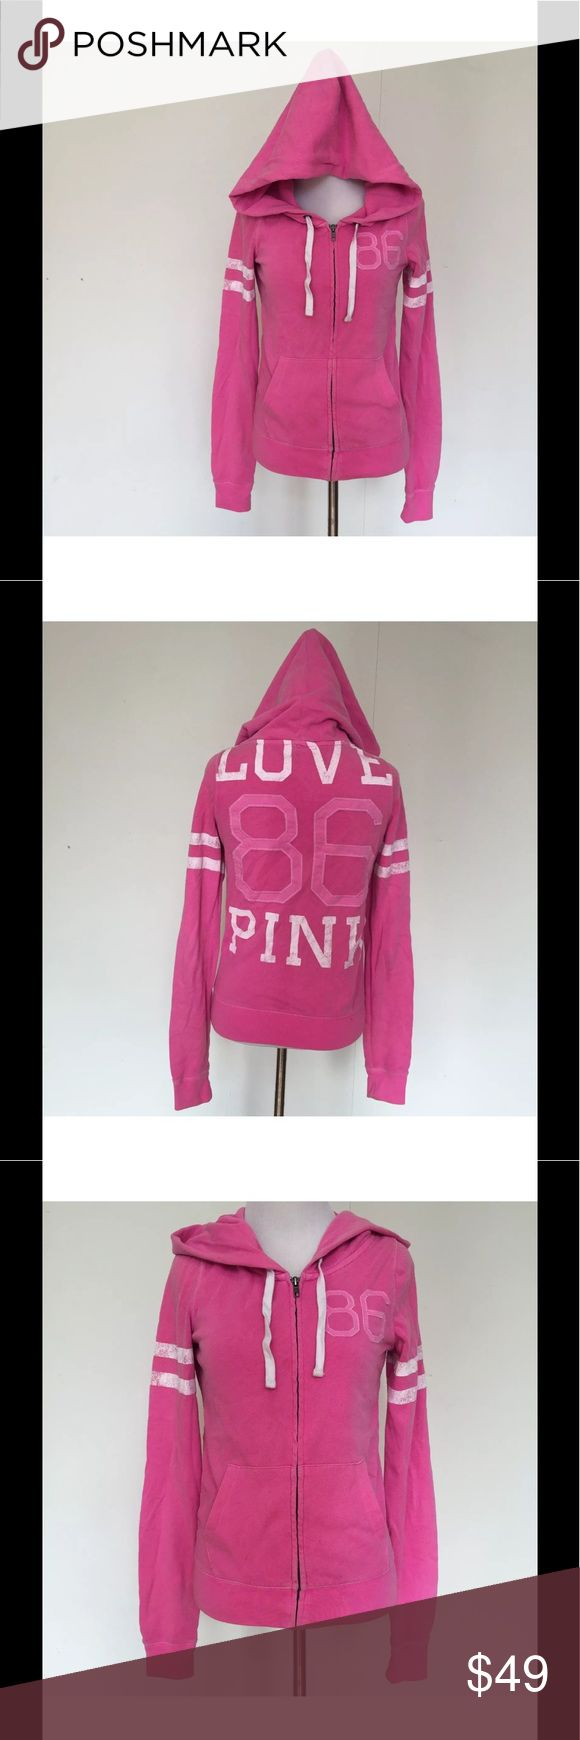 """Victorias Secret PINK Zip White 86 Rugby Hoodie S Victorias Secret PINK Zip Up White 86 Rugby Hoodie Sweatshirt Surfer Retro Small  Victoria's Secret PINK cute and cozy zip up hoodie. The number """"86"""" are on the front and back. It also has LOVE PINK on the back as well. It has 2 white stripes on each sleeve. Super soft inside! Two front pockets and drawstrings for the hood.   Size: Small Bust (flat): 19""""-24"""" Length (from shoulder): 21"""" Sleeve inseam (from armpit): 21.5""""  60% Cotton. 40%…"""